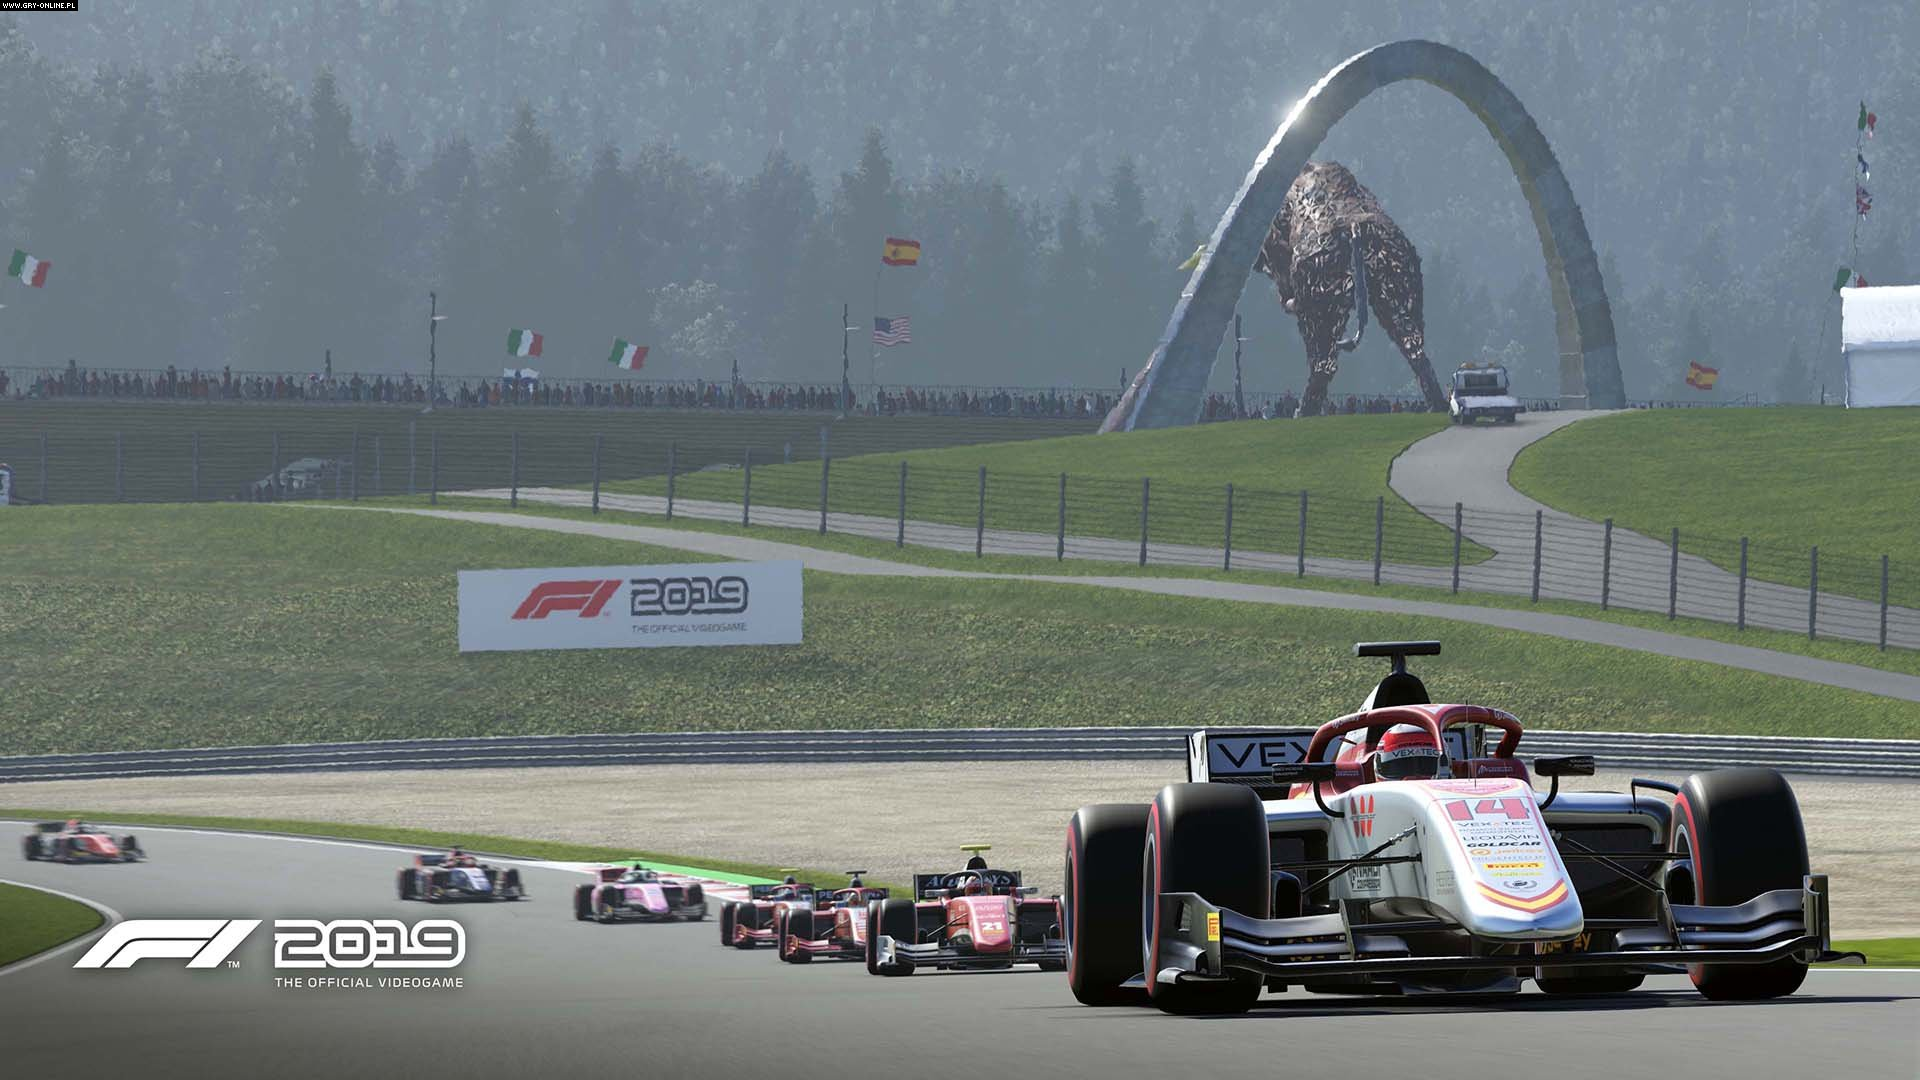 F1 2019 PC, PS4, XONE Games Image 20/104, Codemasters Software